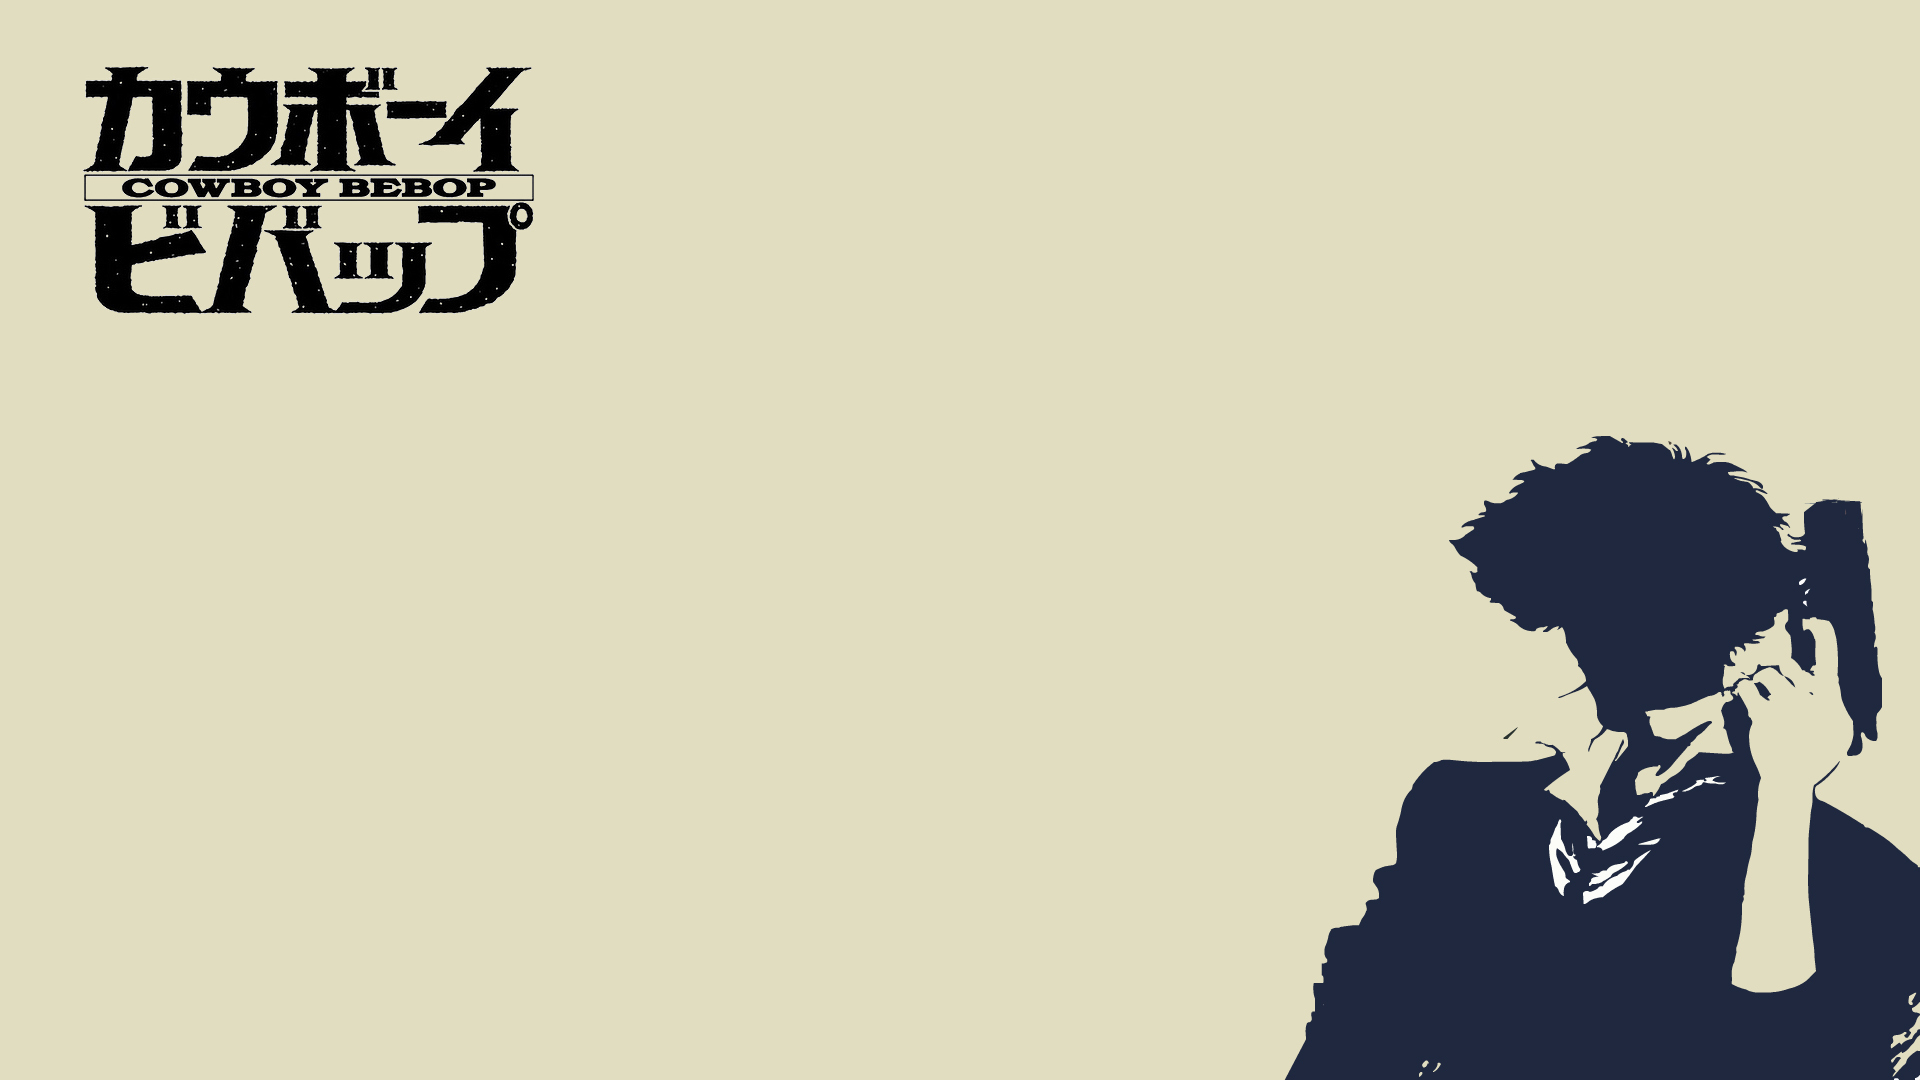 cowboy bebop Simple Background HD Wallpaper